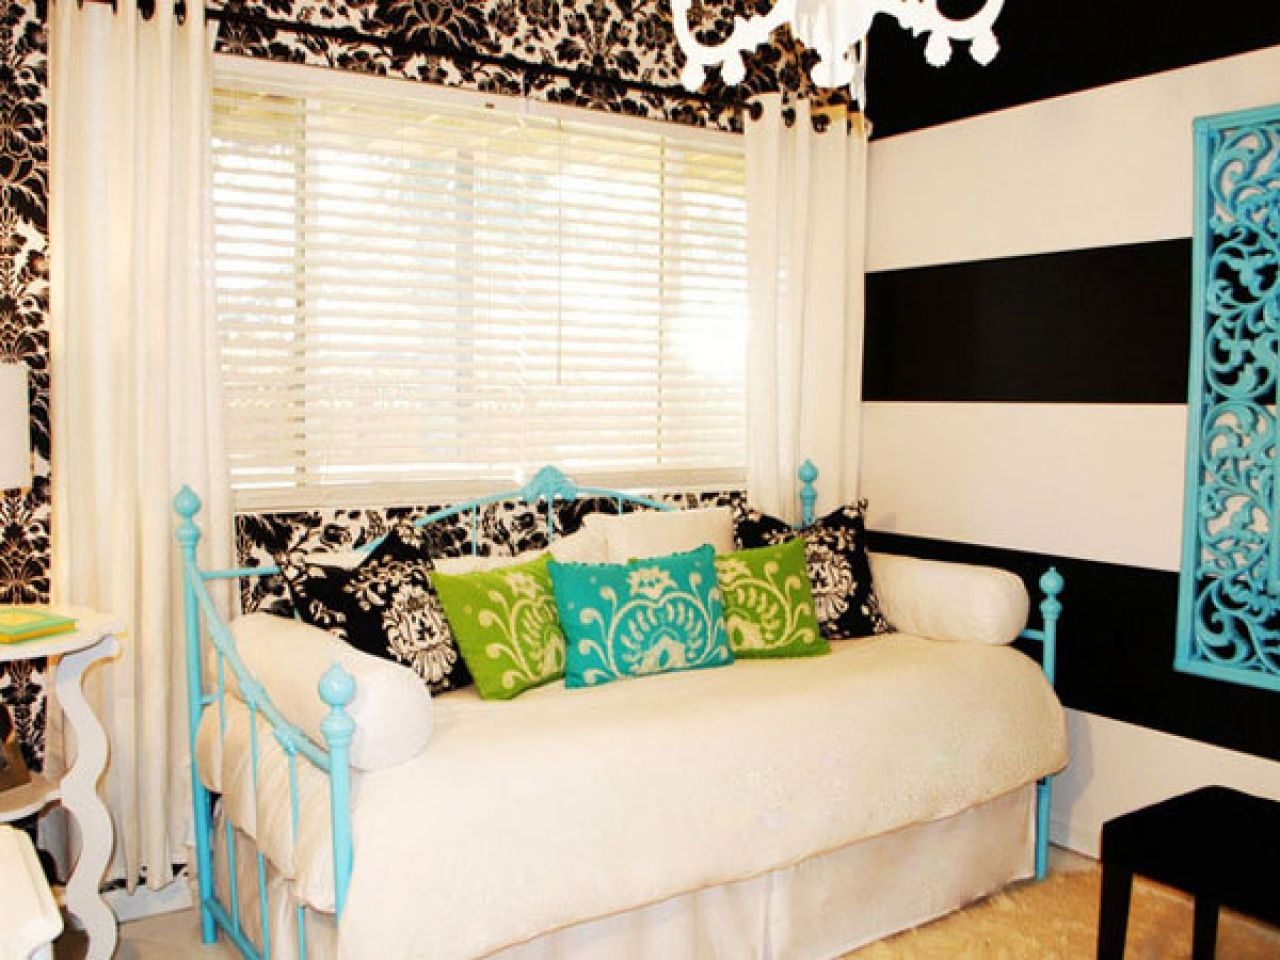 Bedroom, : Killer Black And Blue Teenage Girl Bedroom Decoration Using Light Blue Iron Daybed Frame Including All White Daybed Valance And Black And White Stripe Bedroom Wall Paint